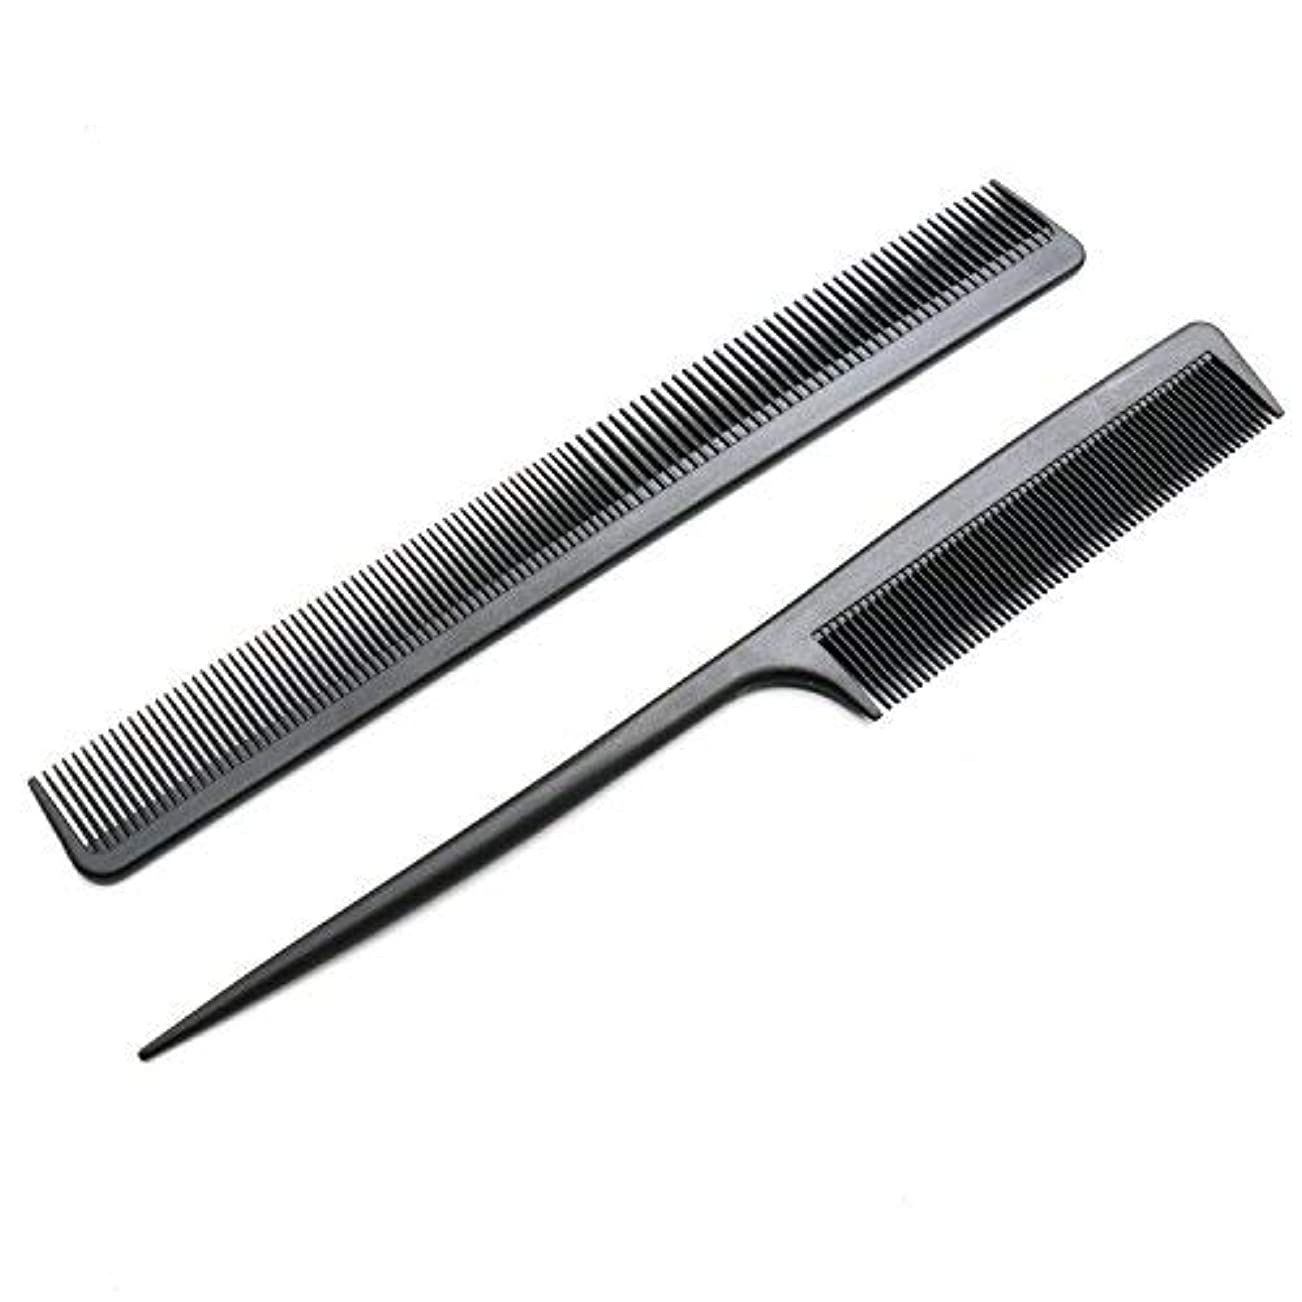 2 Pack Carbon Fiber Anti Static Chemical And Heat Resistant Tail Comb For All Hair Types,Black [並行輸入品]